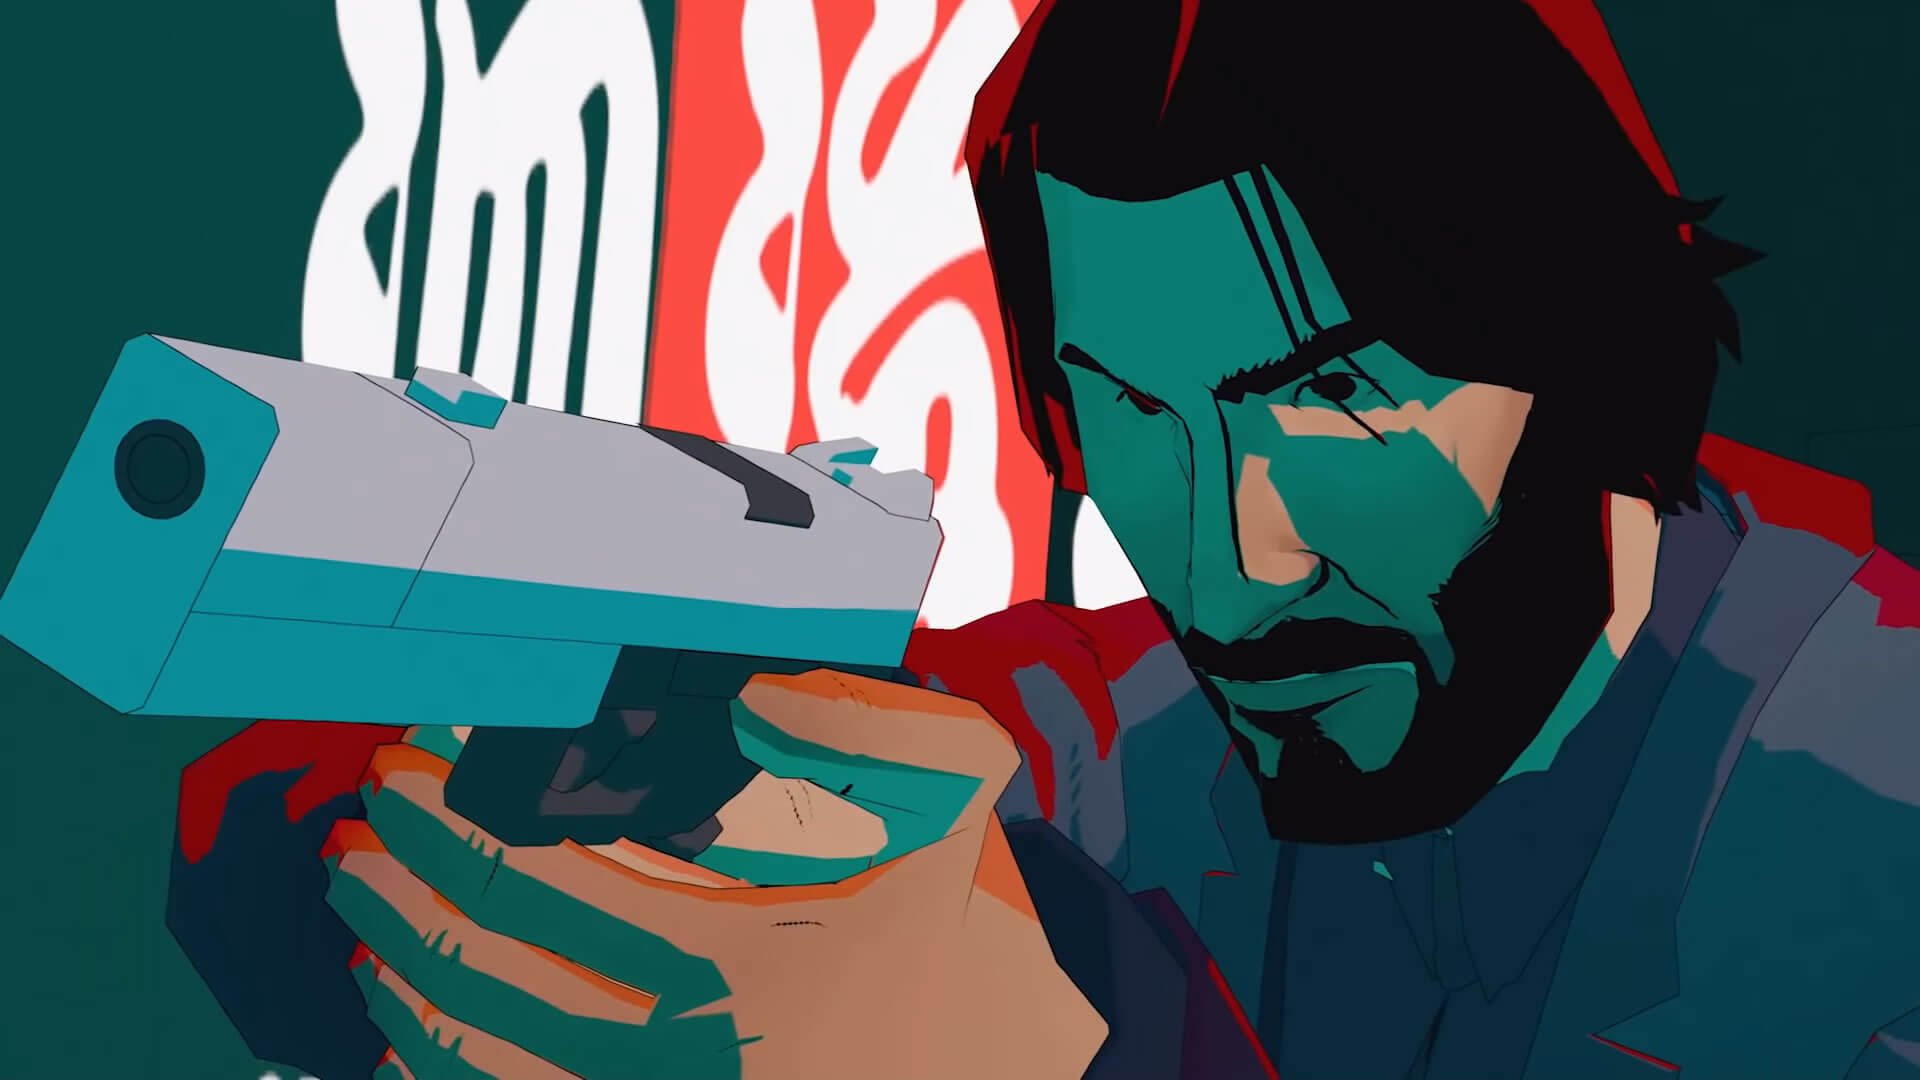 We're finally getting a John Wick video game